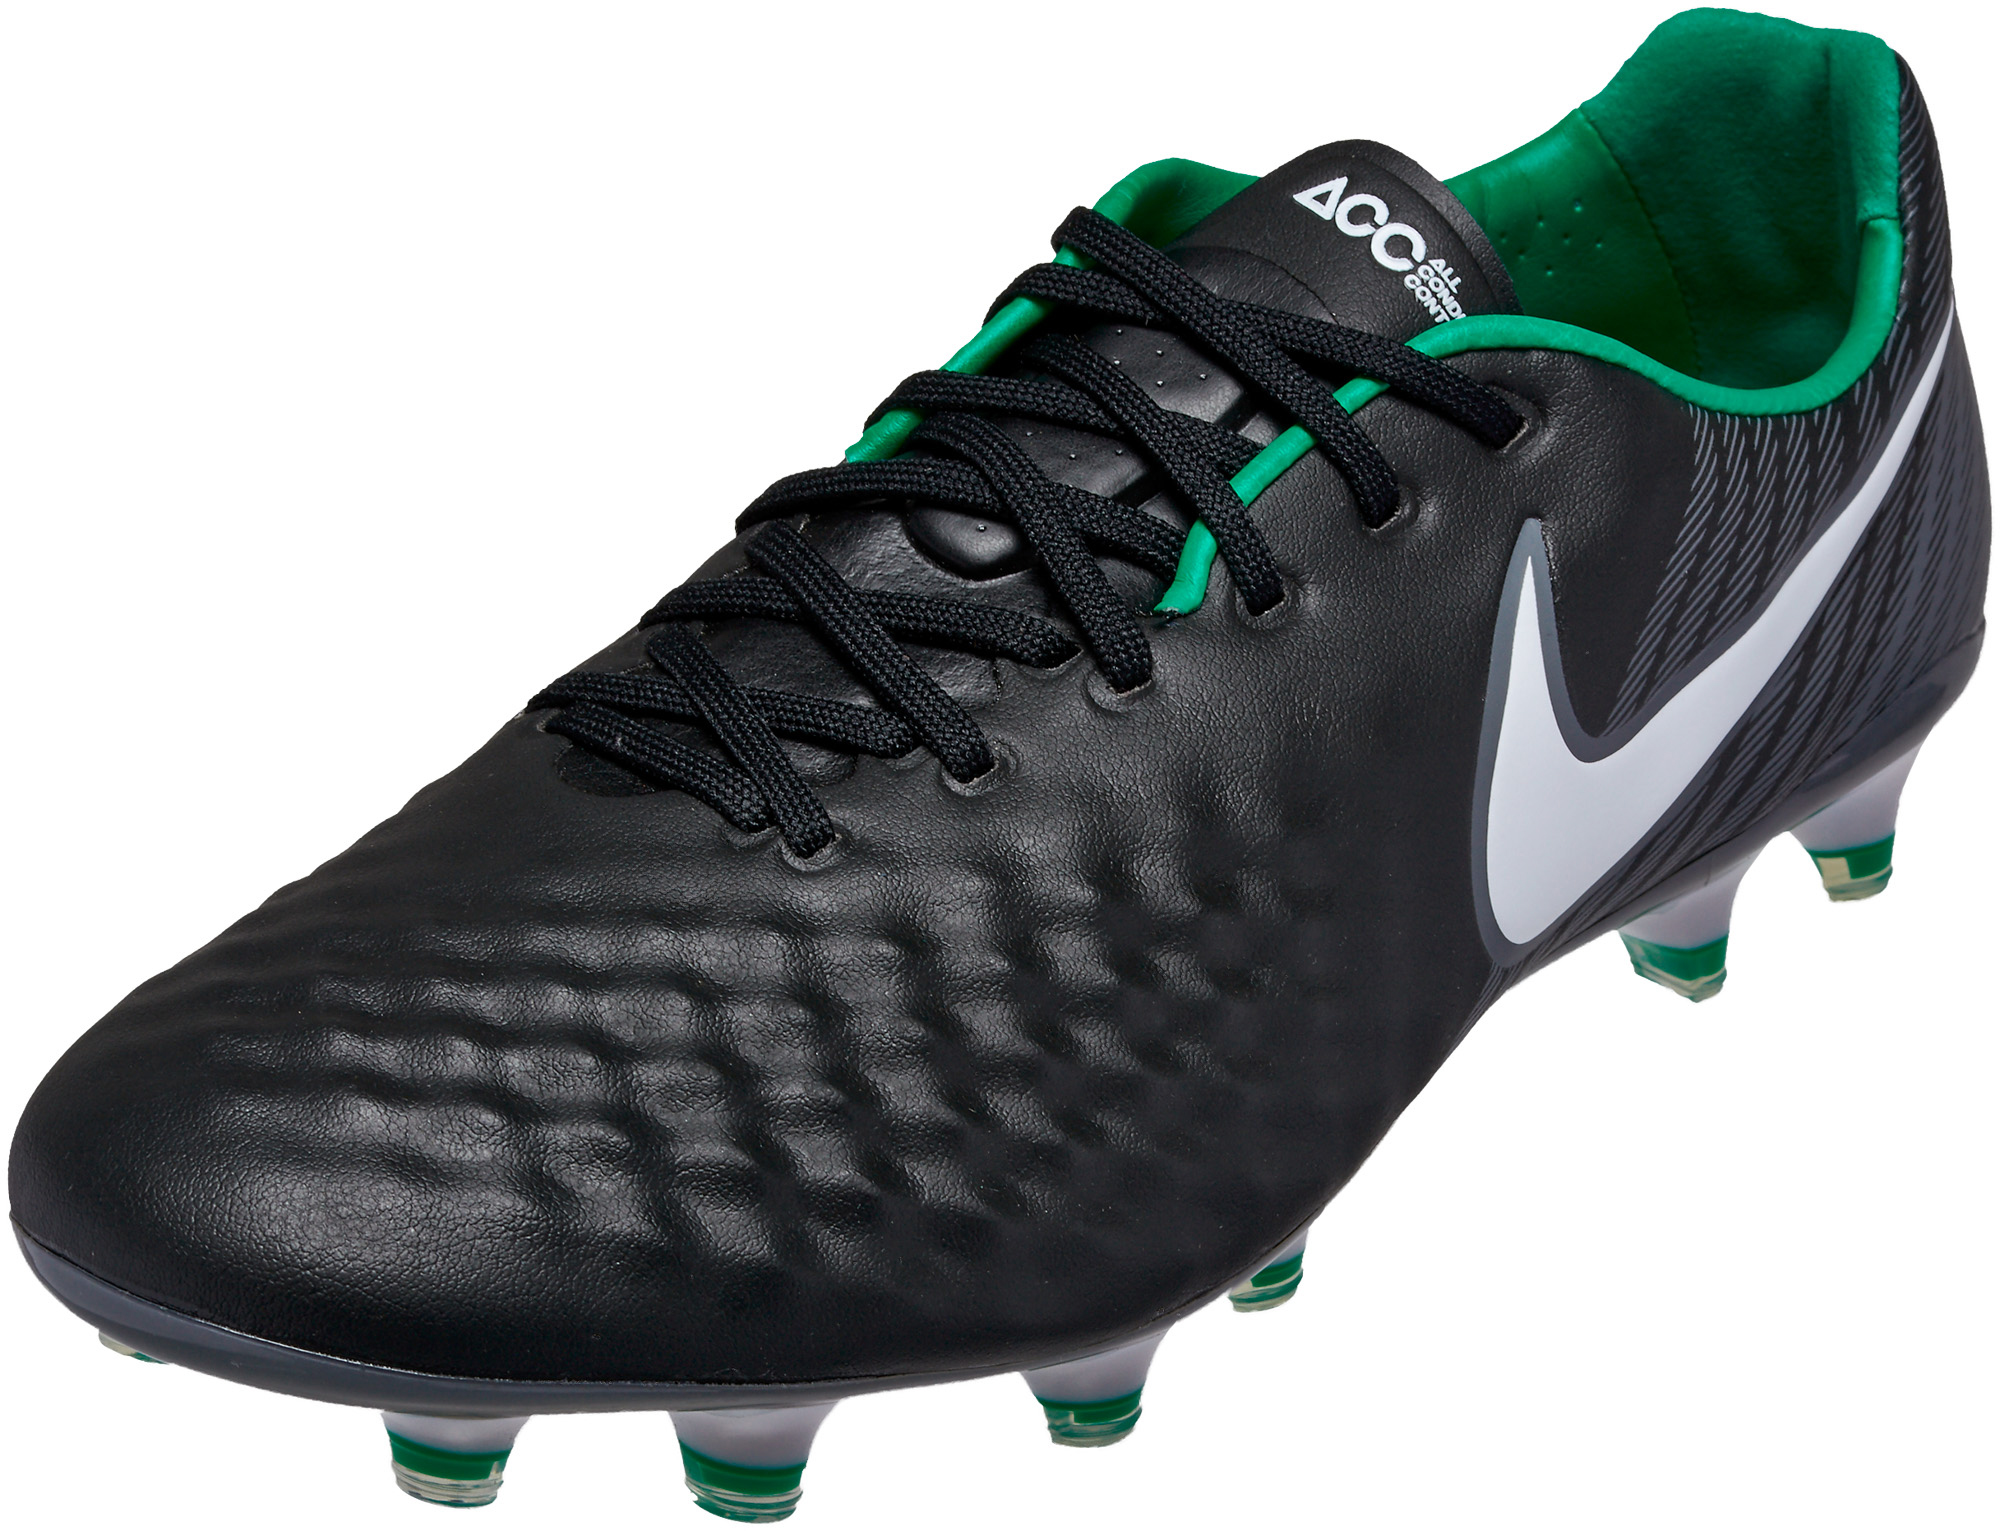 6d0cd1dd7bf Nike Magista Opus II FG – Black/White